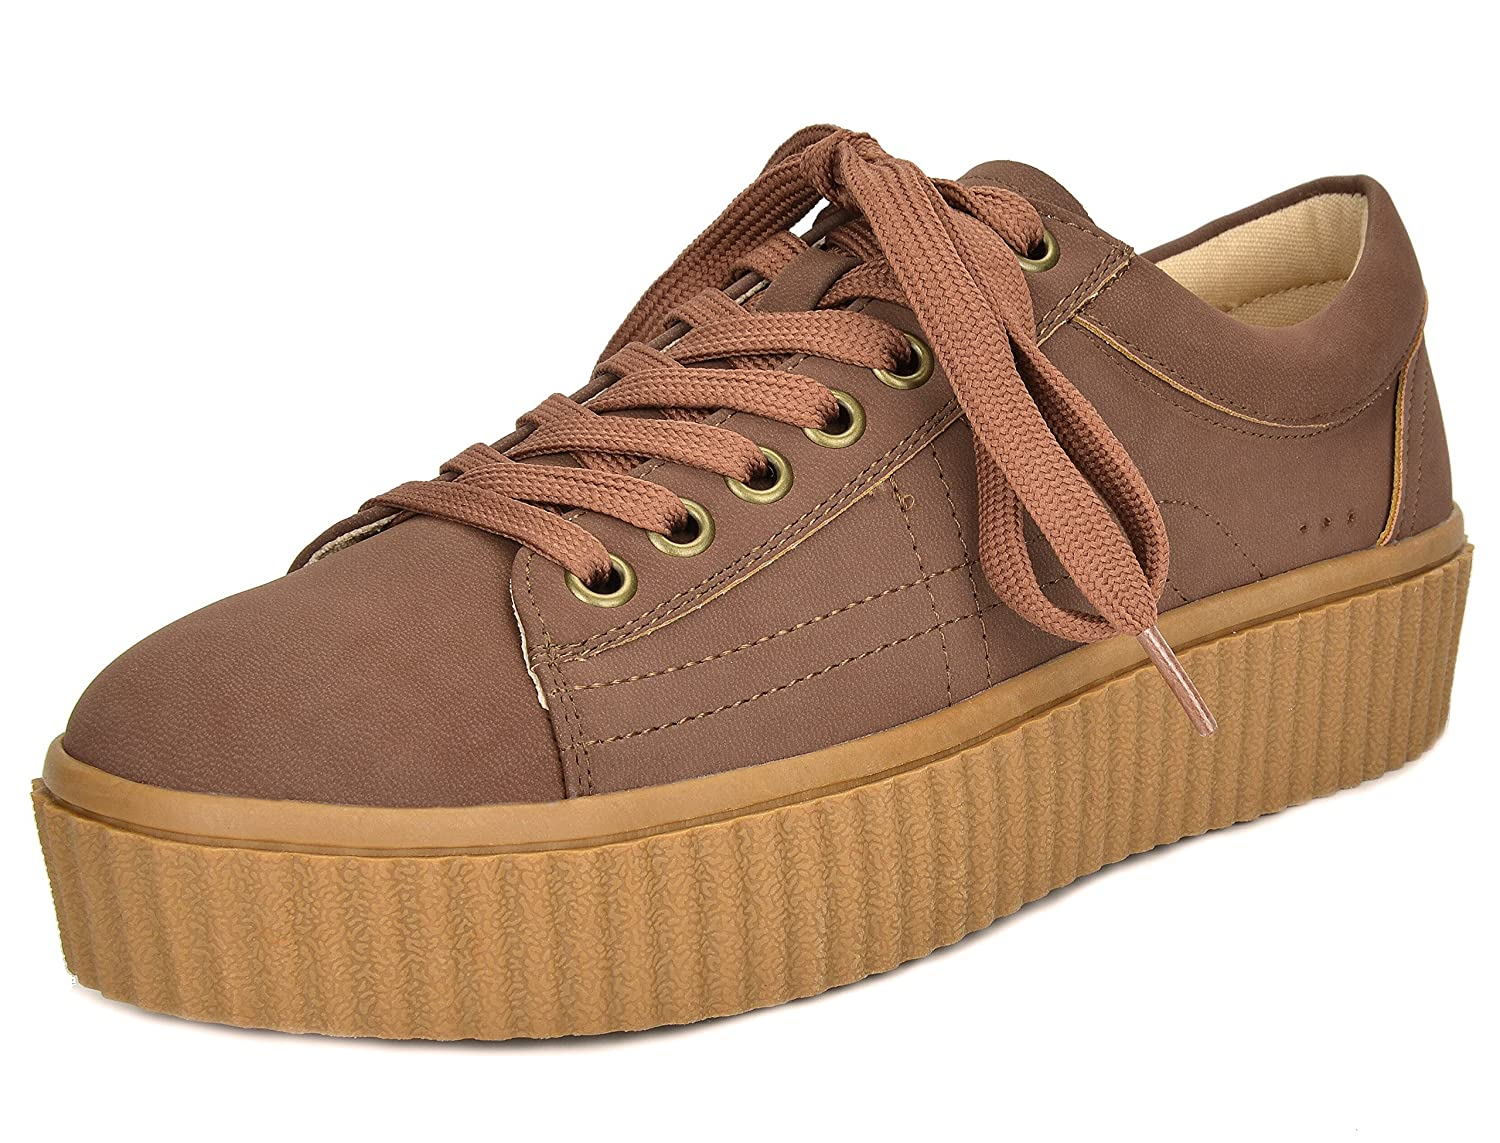 TOETOS Women's REINNA-01 Lace up Platform Sneakers Shoes B01N5IQO4U 9 B(M) US|Tan